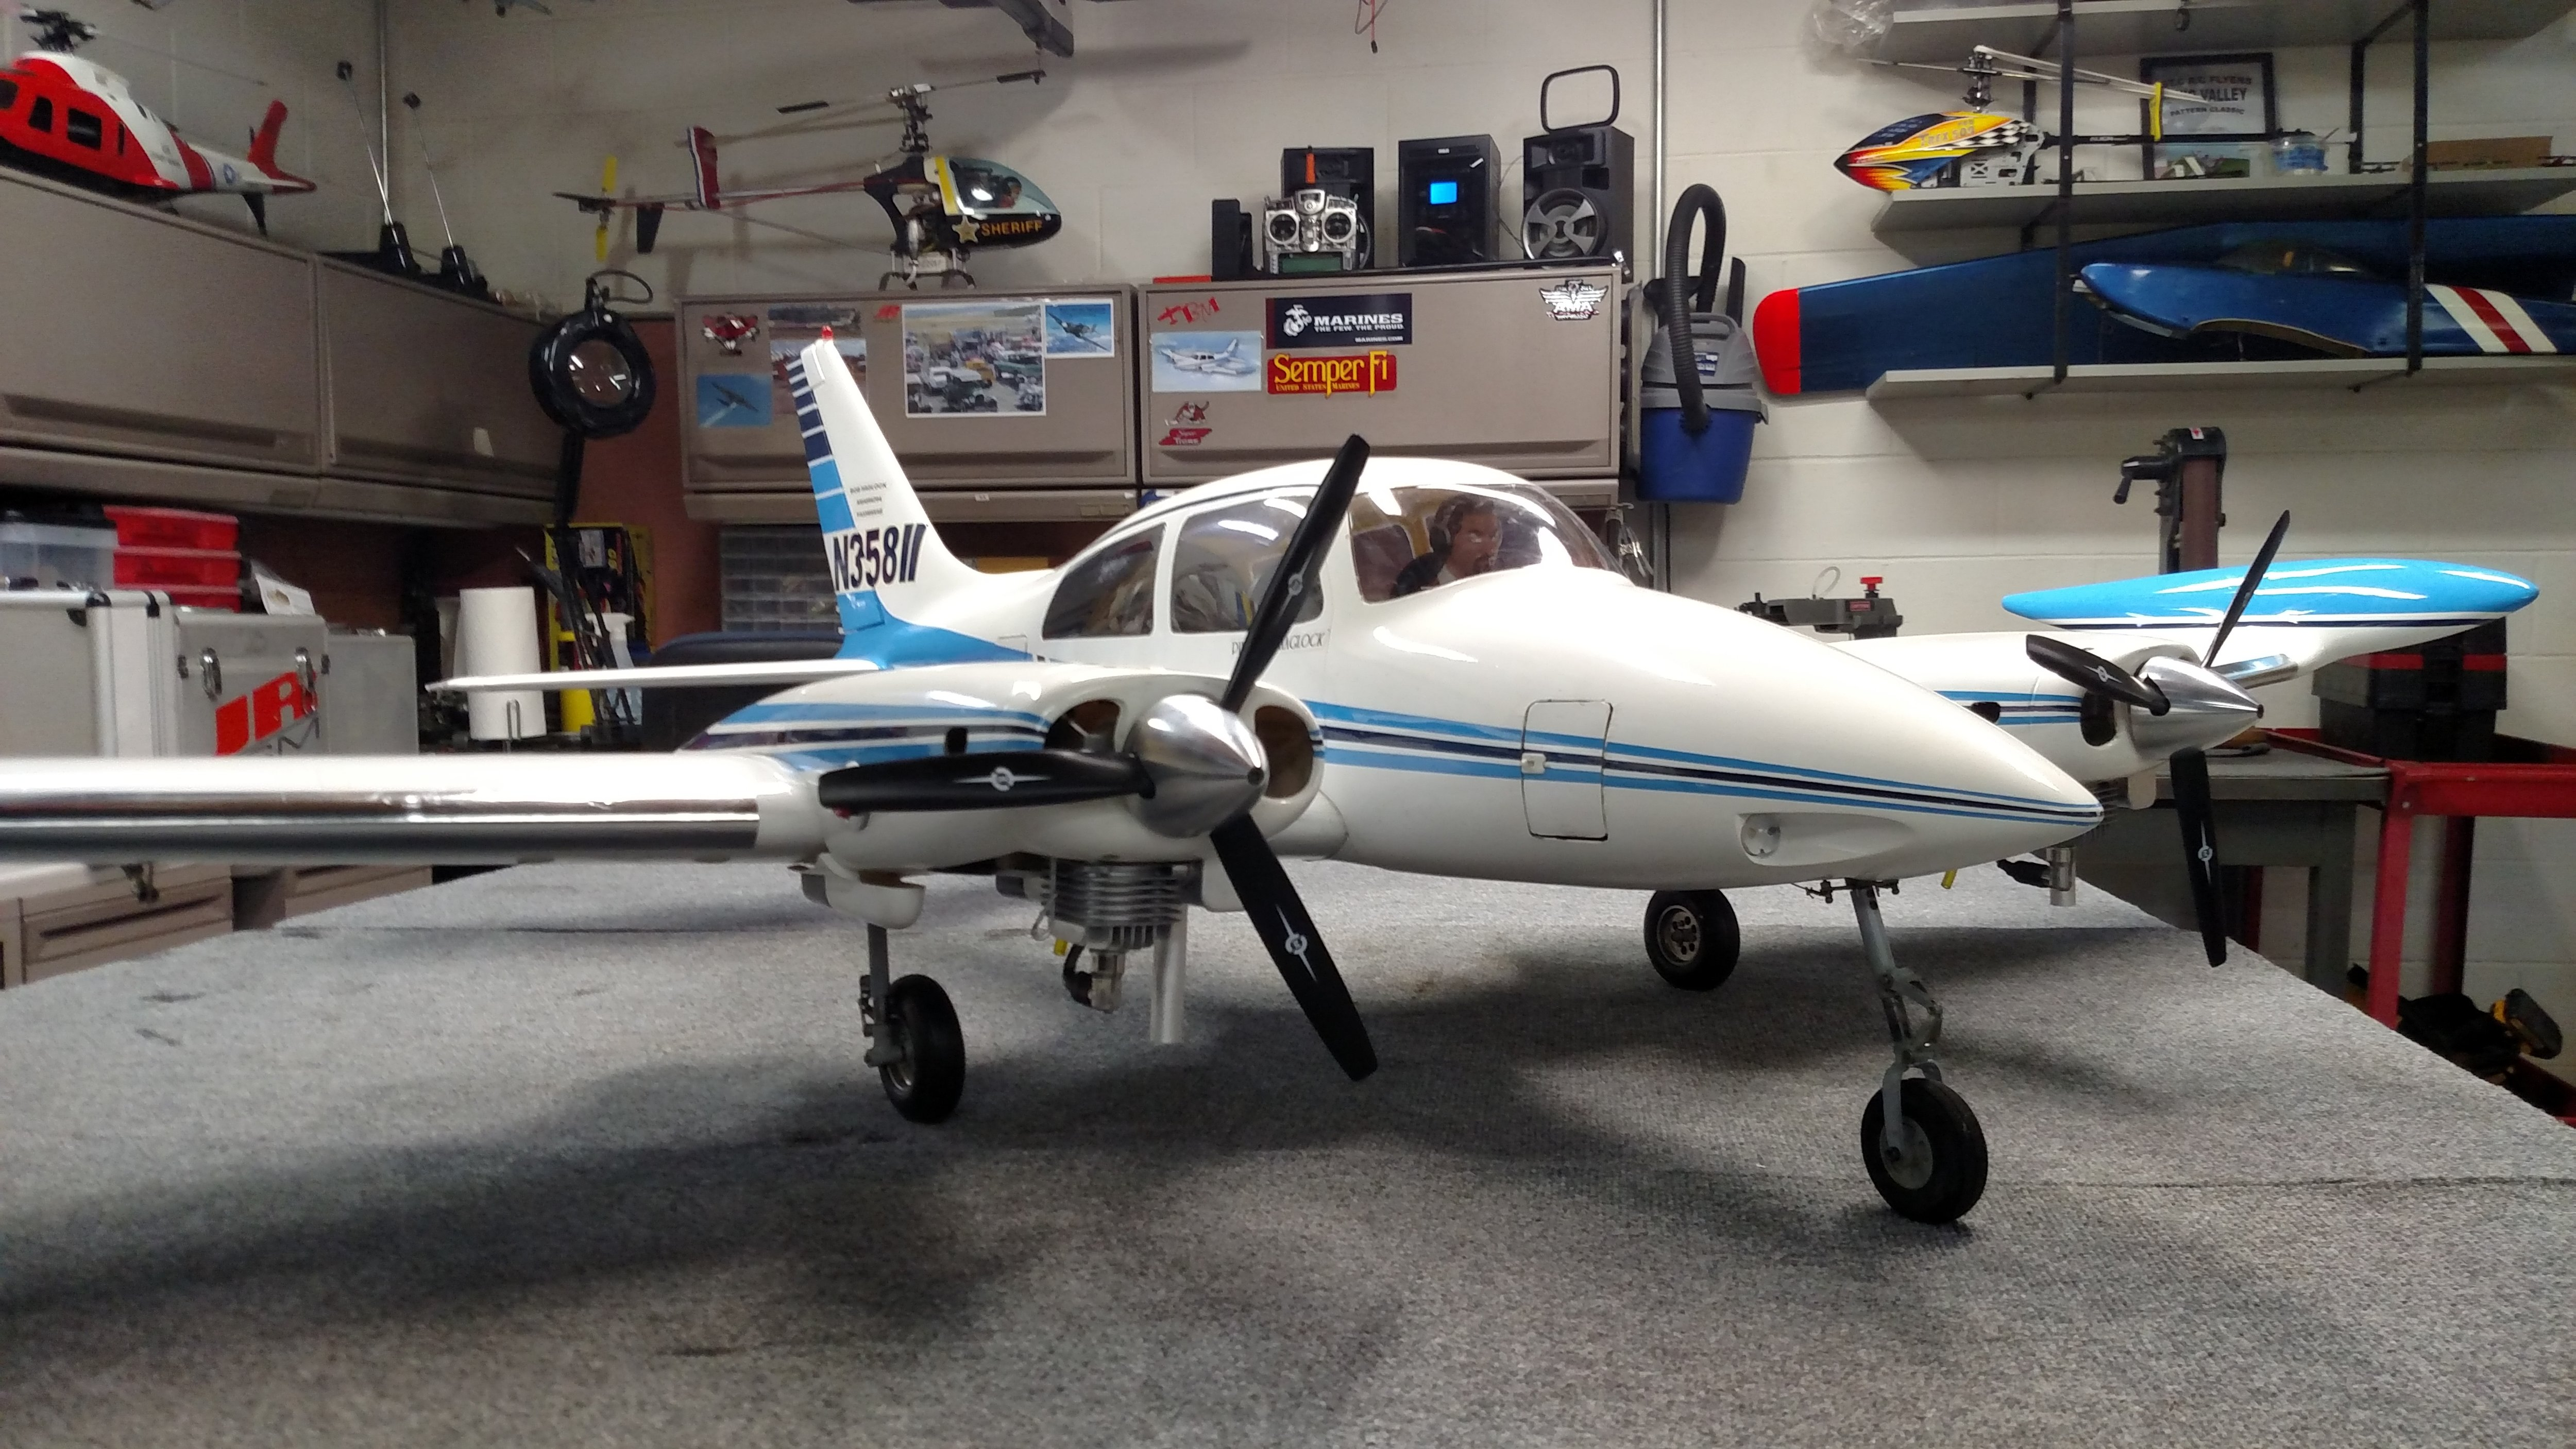 Click image for larger version  Name:Cessna 310 with DLE 20cc.jpg Views:34 Size:1.64 MB ID:2258624